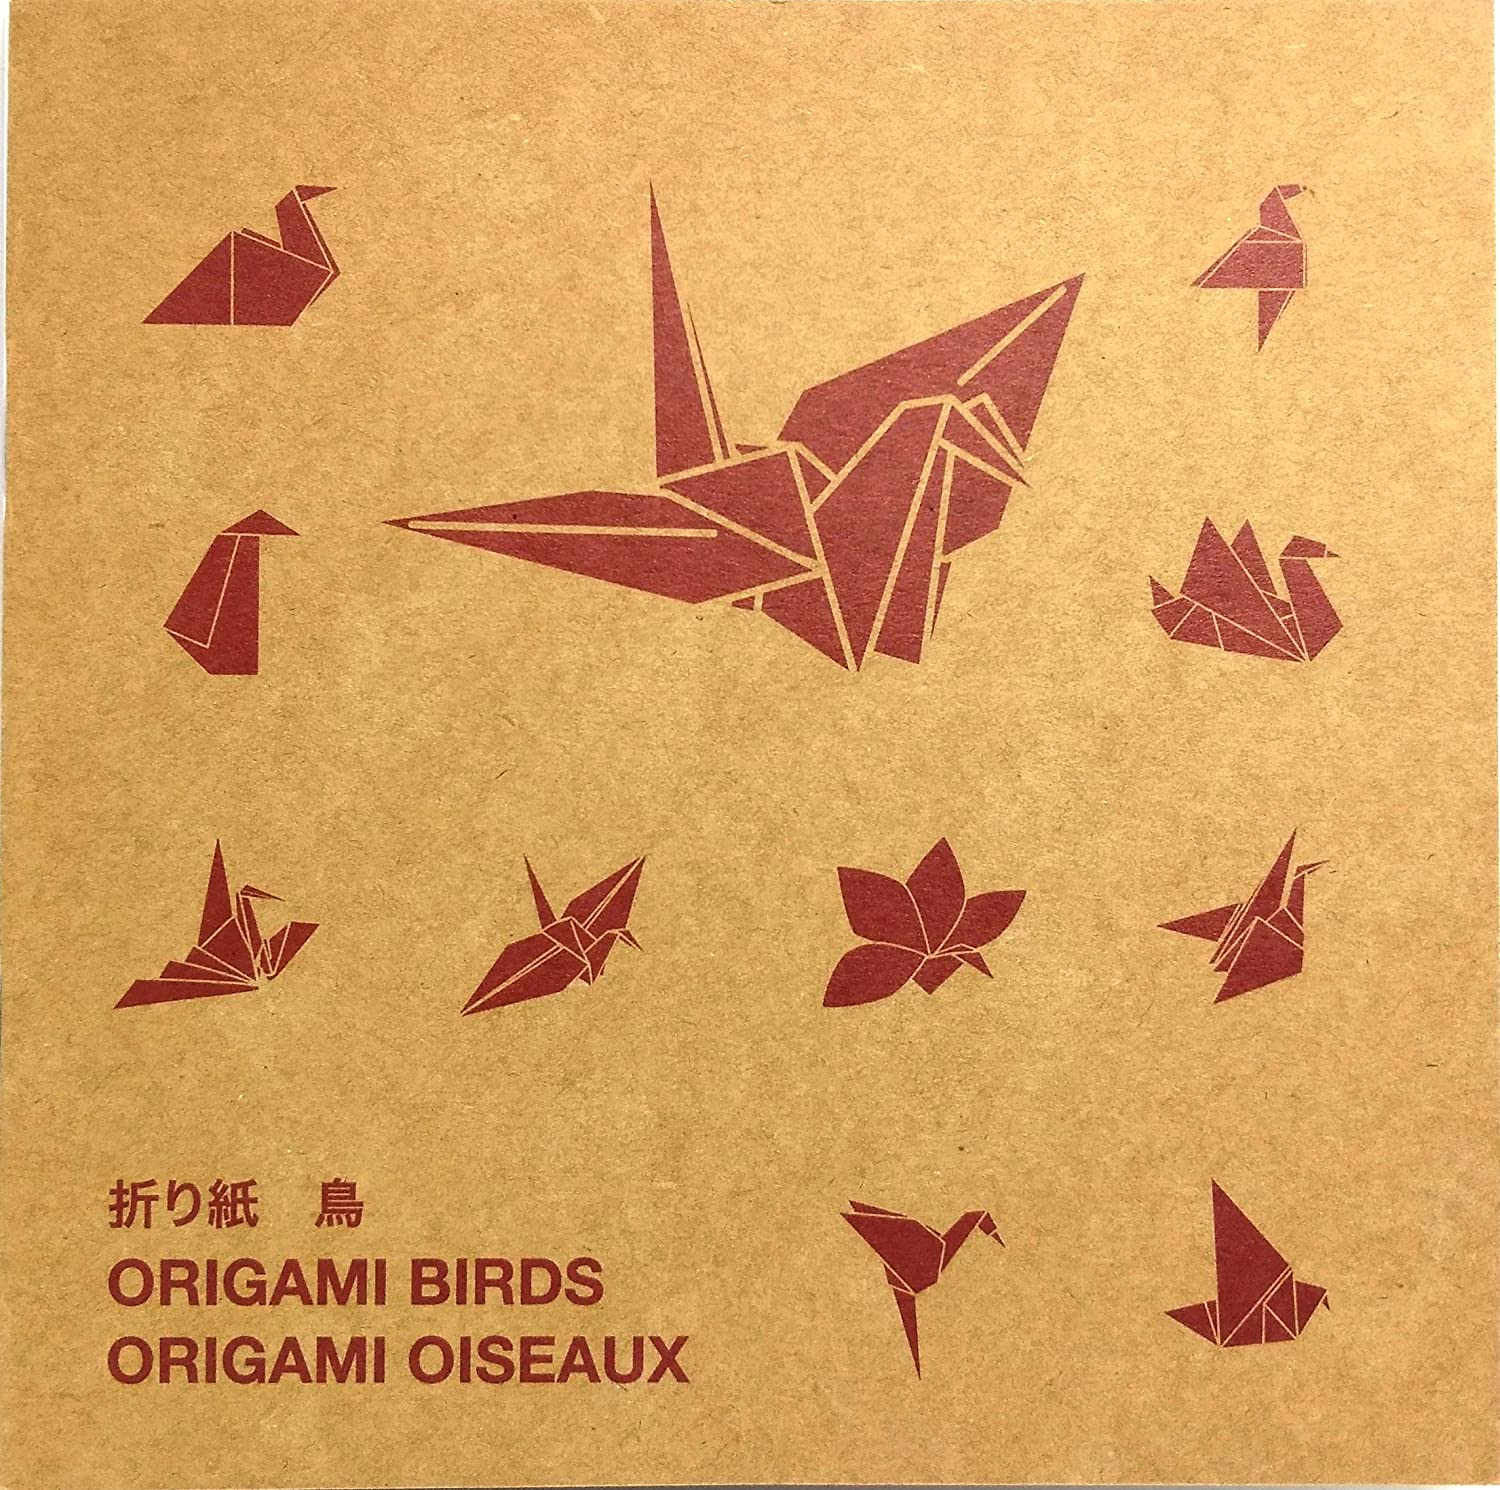 Amazon.com: MUJI Japan, Origami Set with Guide Birds